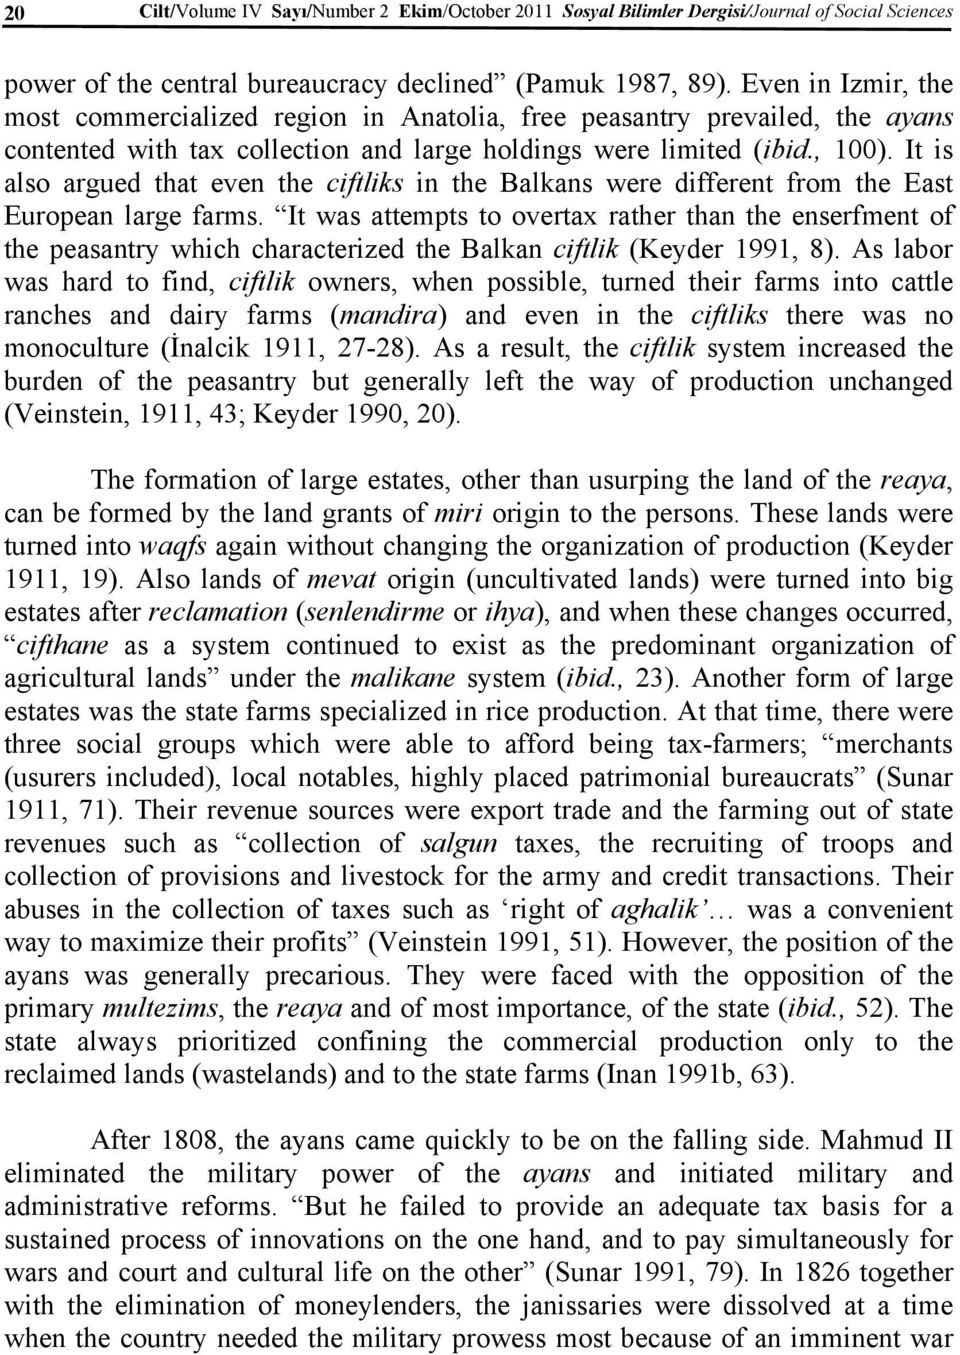 It is also argued that even the ciftliks in the Balkans were different from the East European large farms.